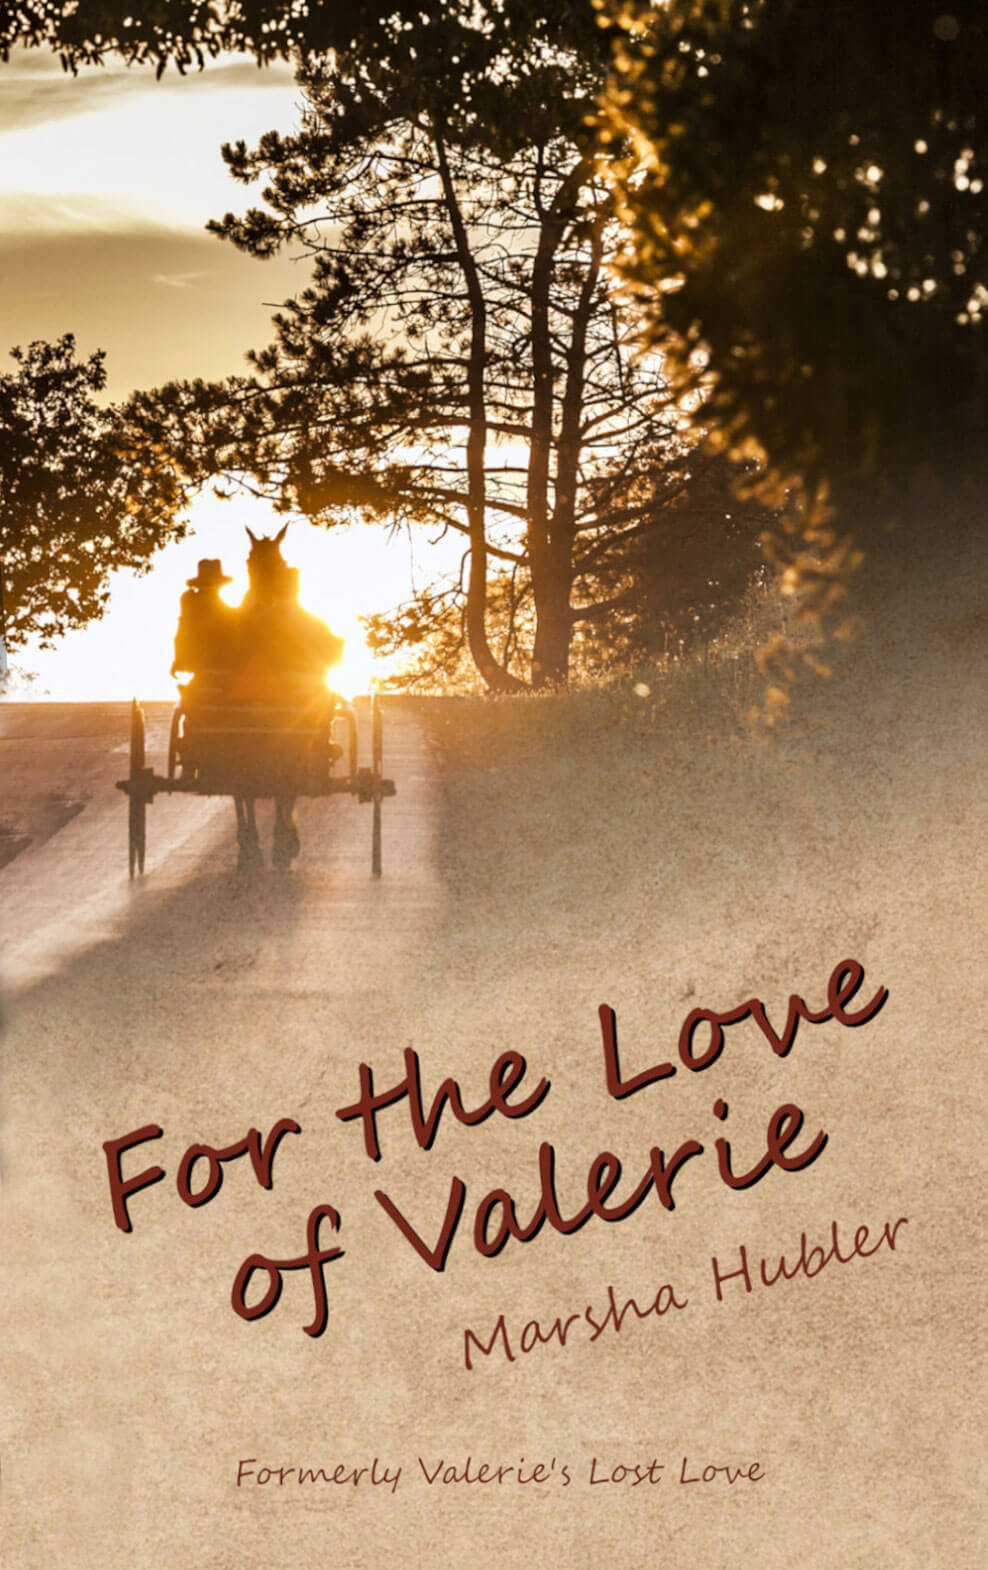 For the Love of Valerie